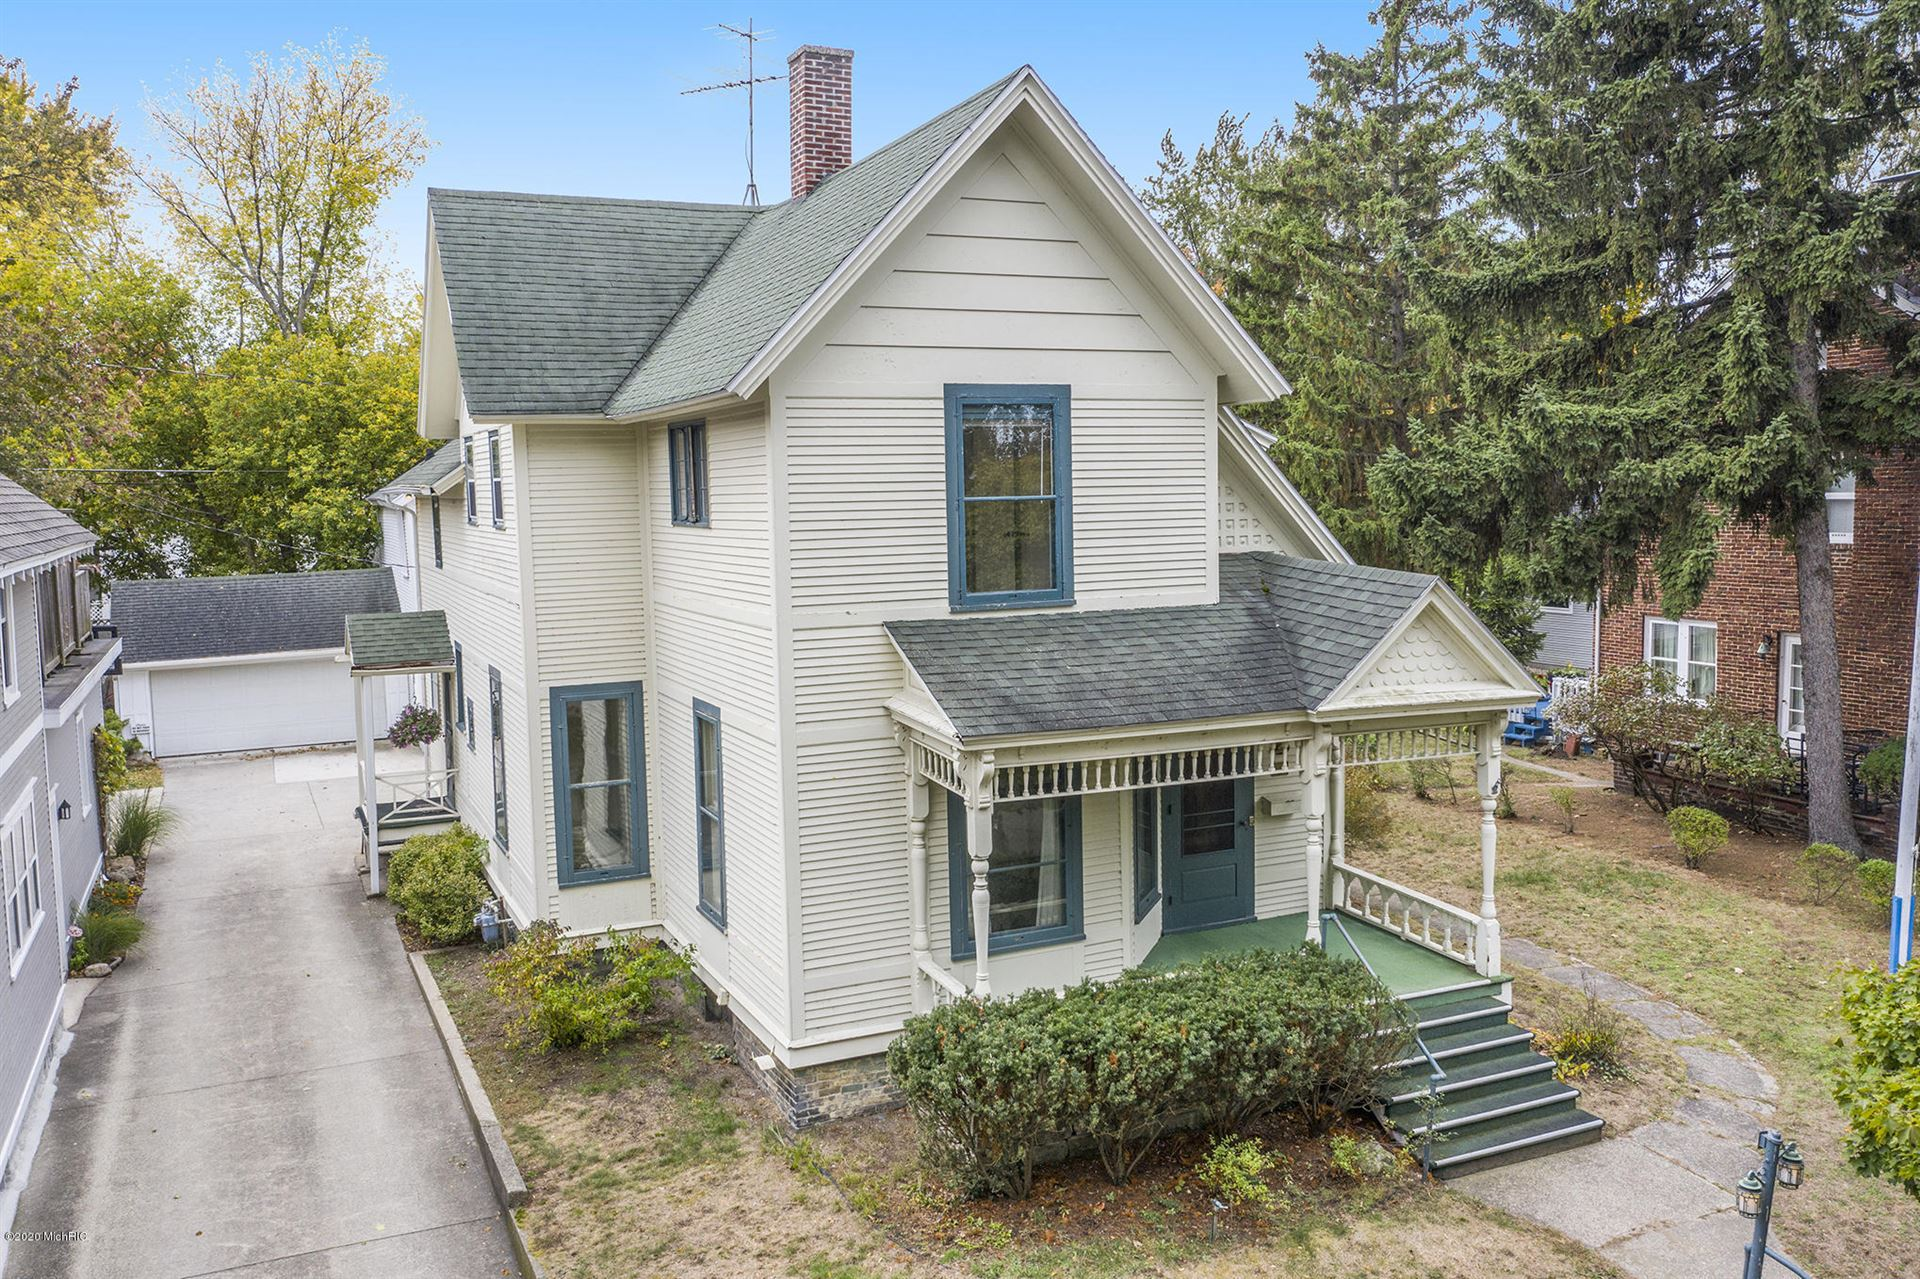 420 Clinton Avenue, Grand Haven, MI 49417 - MLS#: 20043842